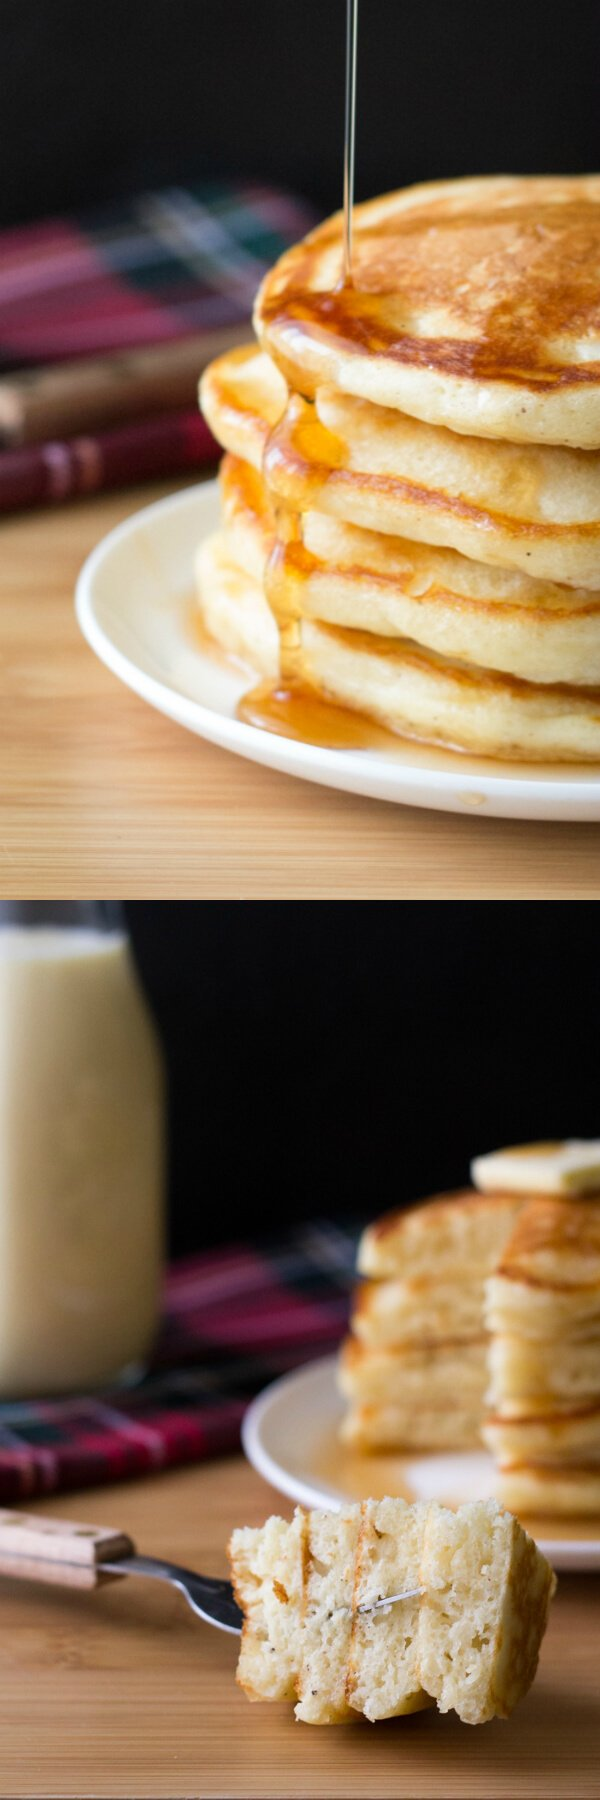 These thick, fluffy Eggnog Pancakes are perfect for holiday breakfasts. Don't wait til Christmas for these delicious pancakes! www.justsotasty.com